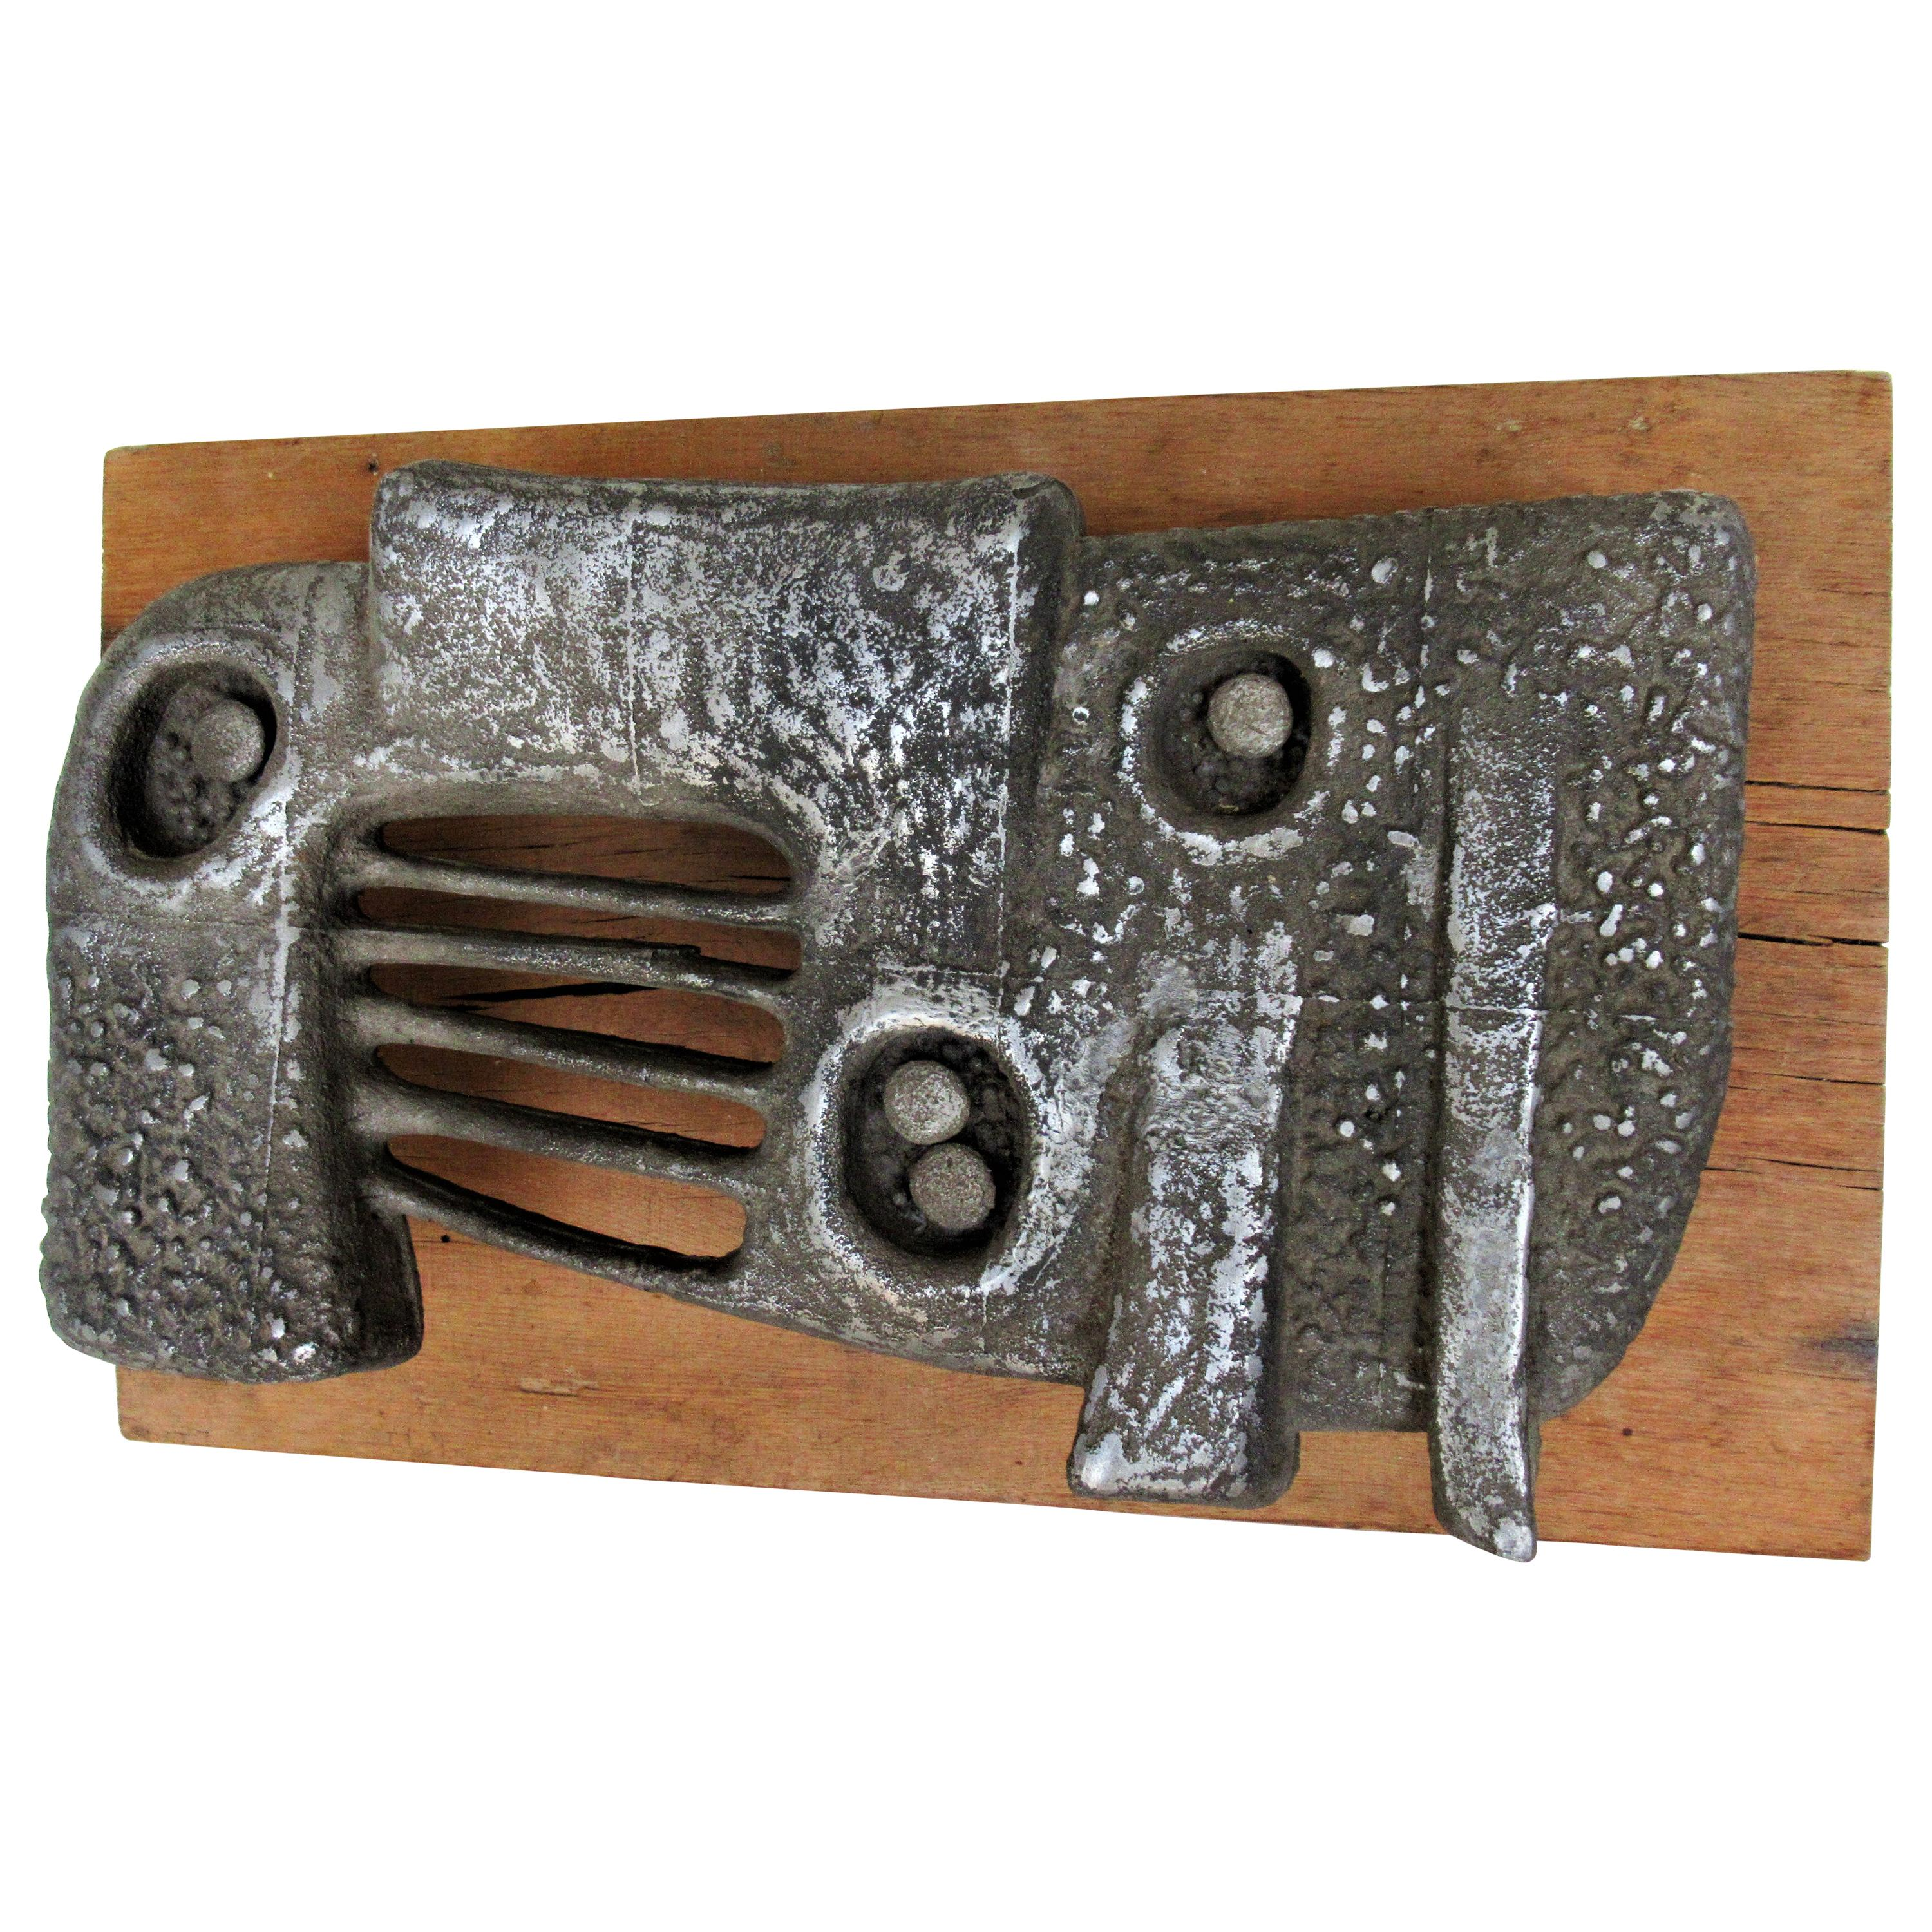 Abstract Brutalist Cast Metal Wall Sculpture by William F. Sellers, 1961